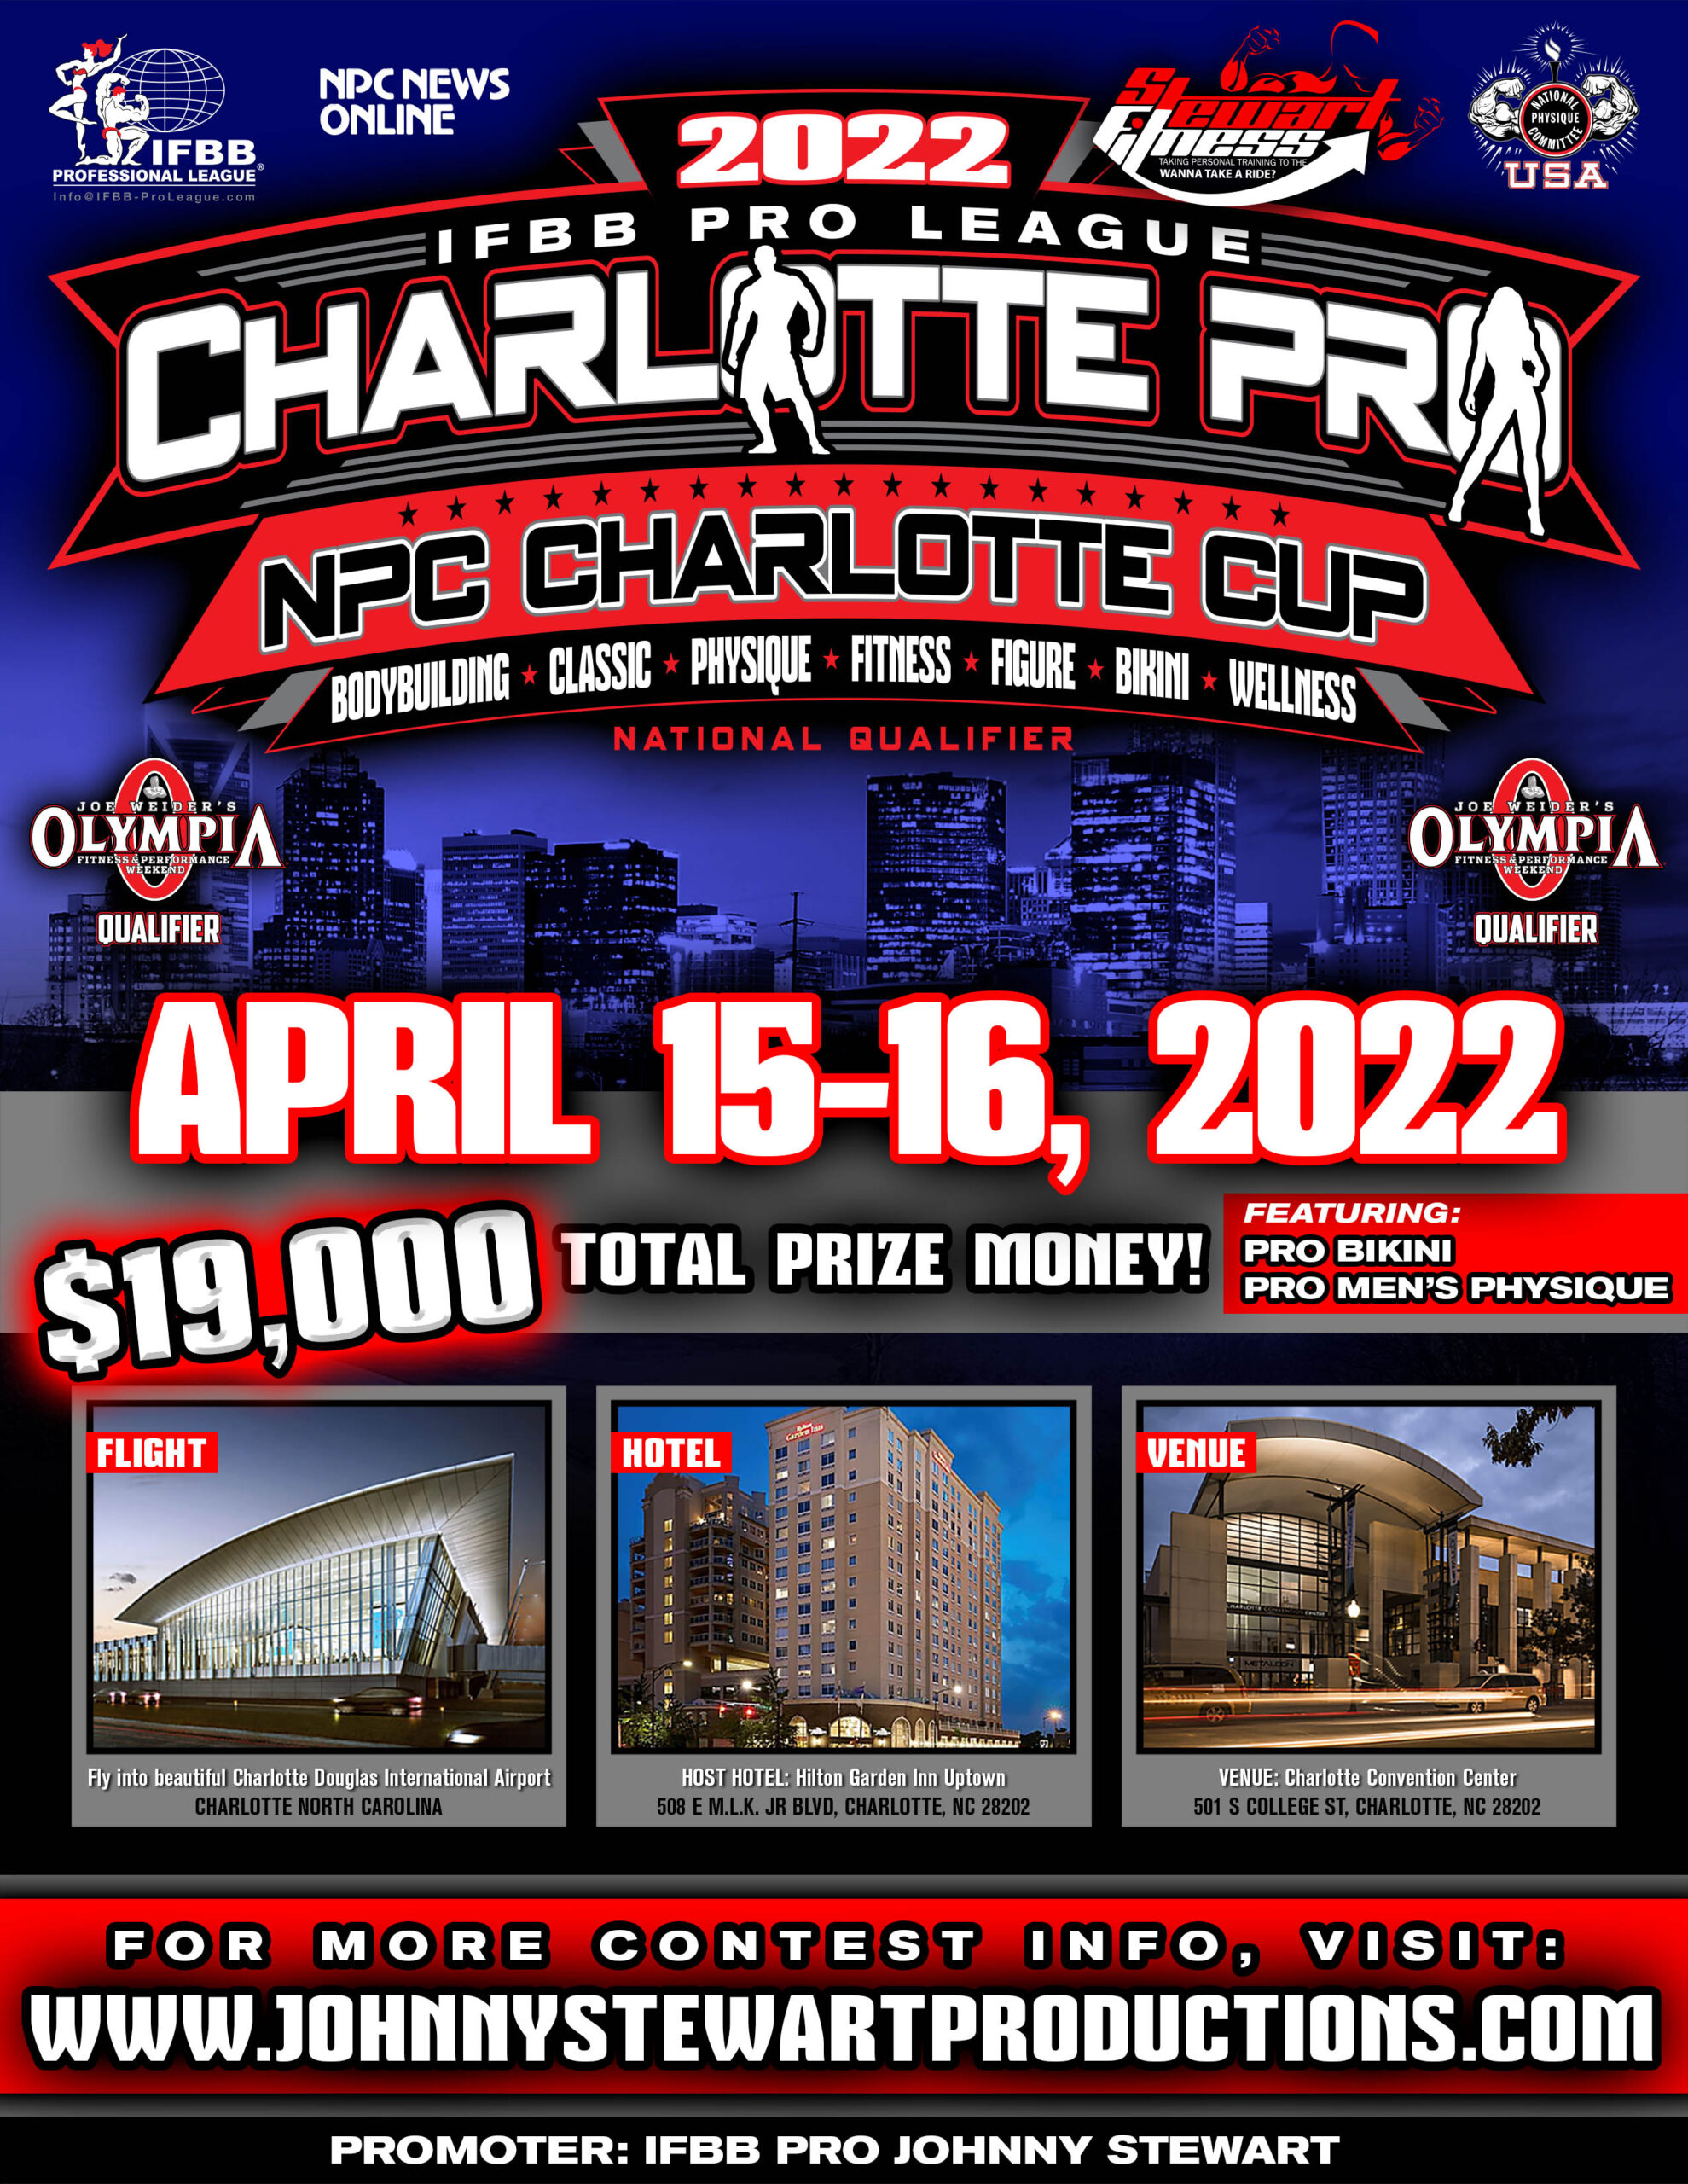 Olympia Qualifier 2022 Charlotte Pro (1) (1)